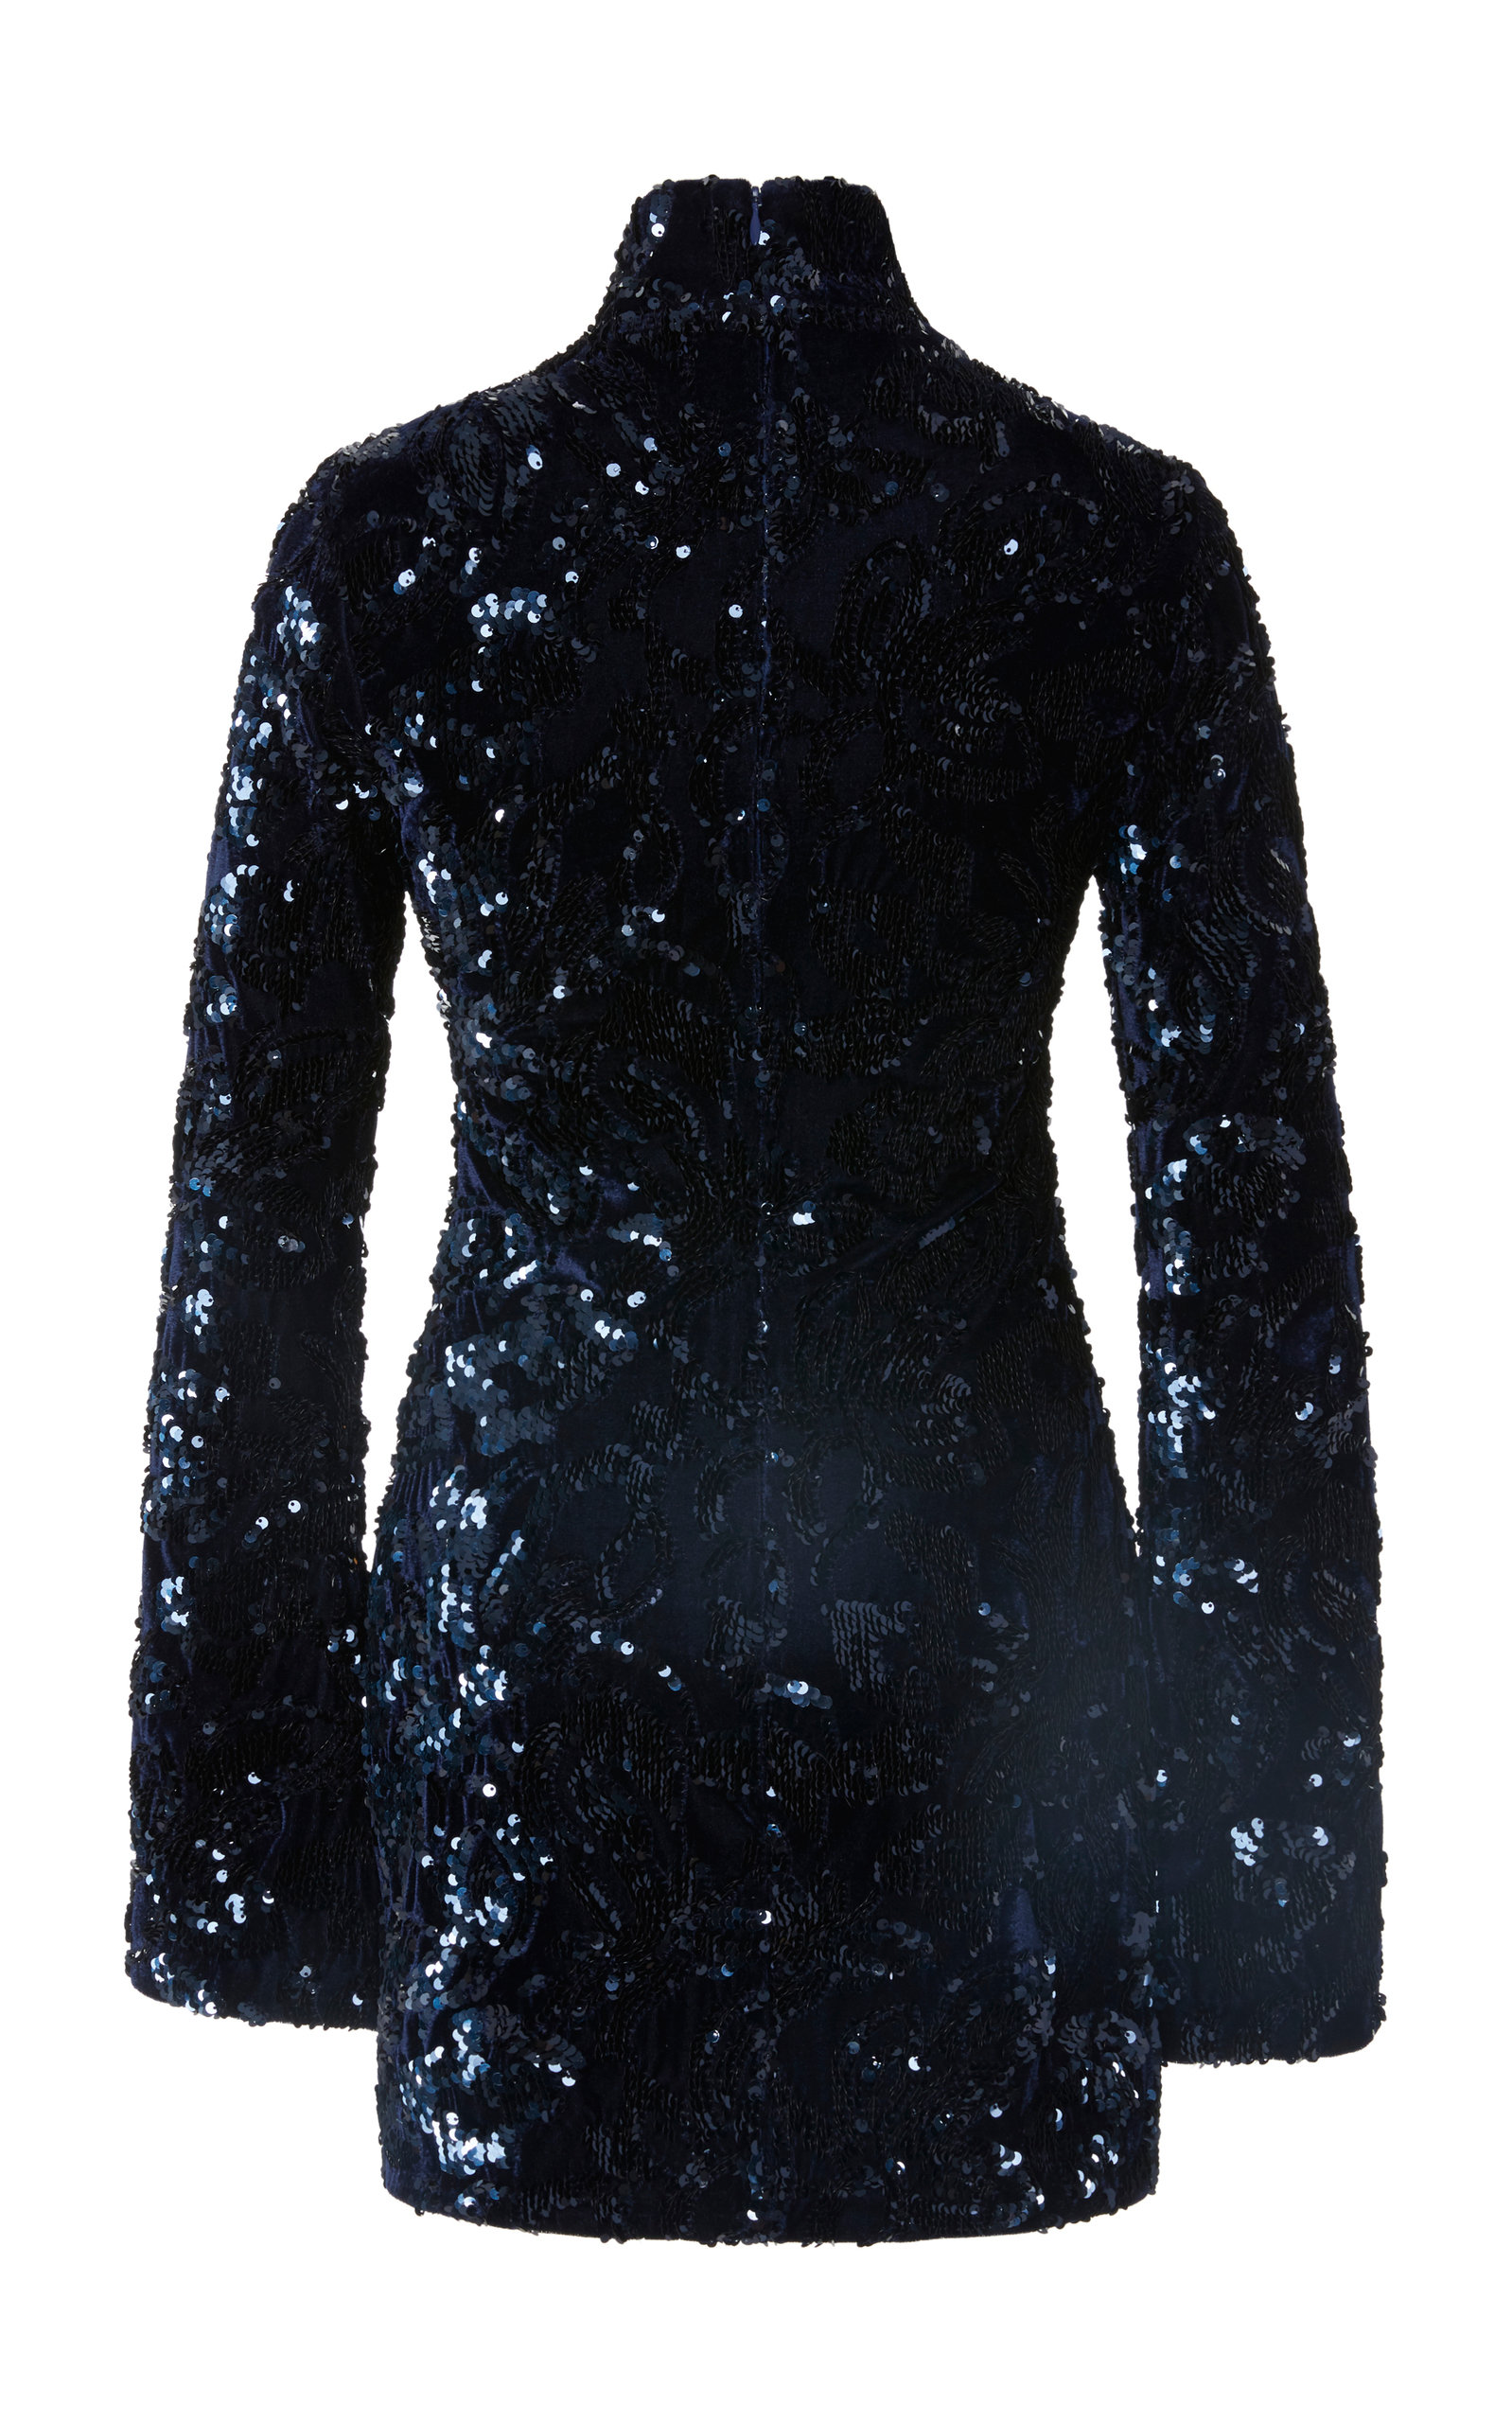 Dress Embellished Rhapsody Alexis Sequin In High Navy Neck Velour XZuOiTwPk